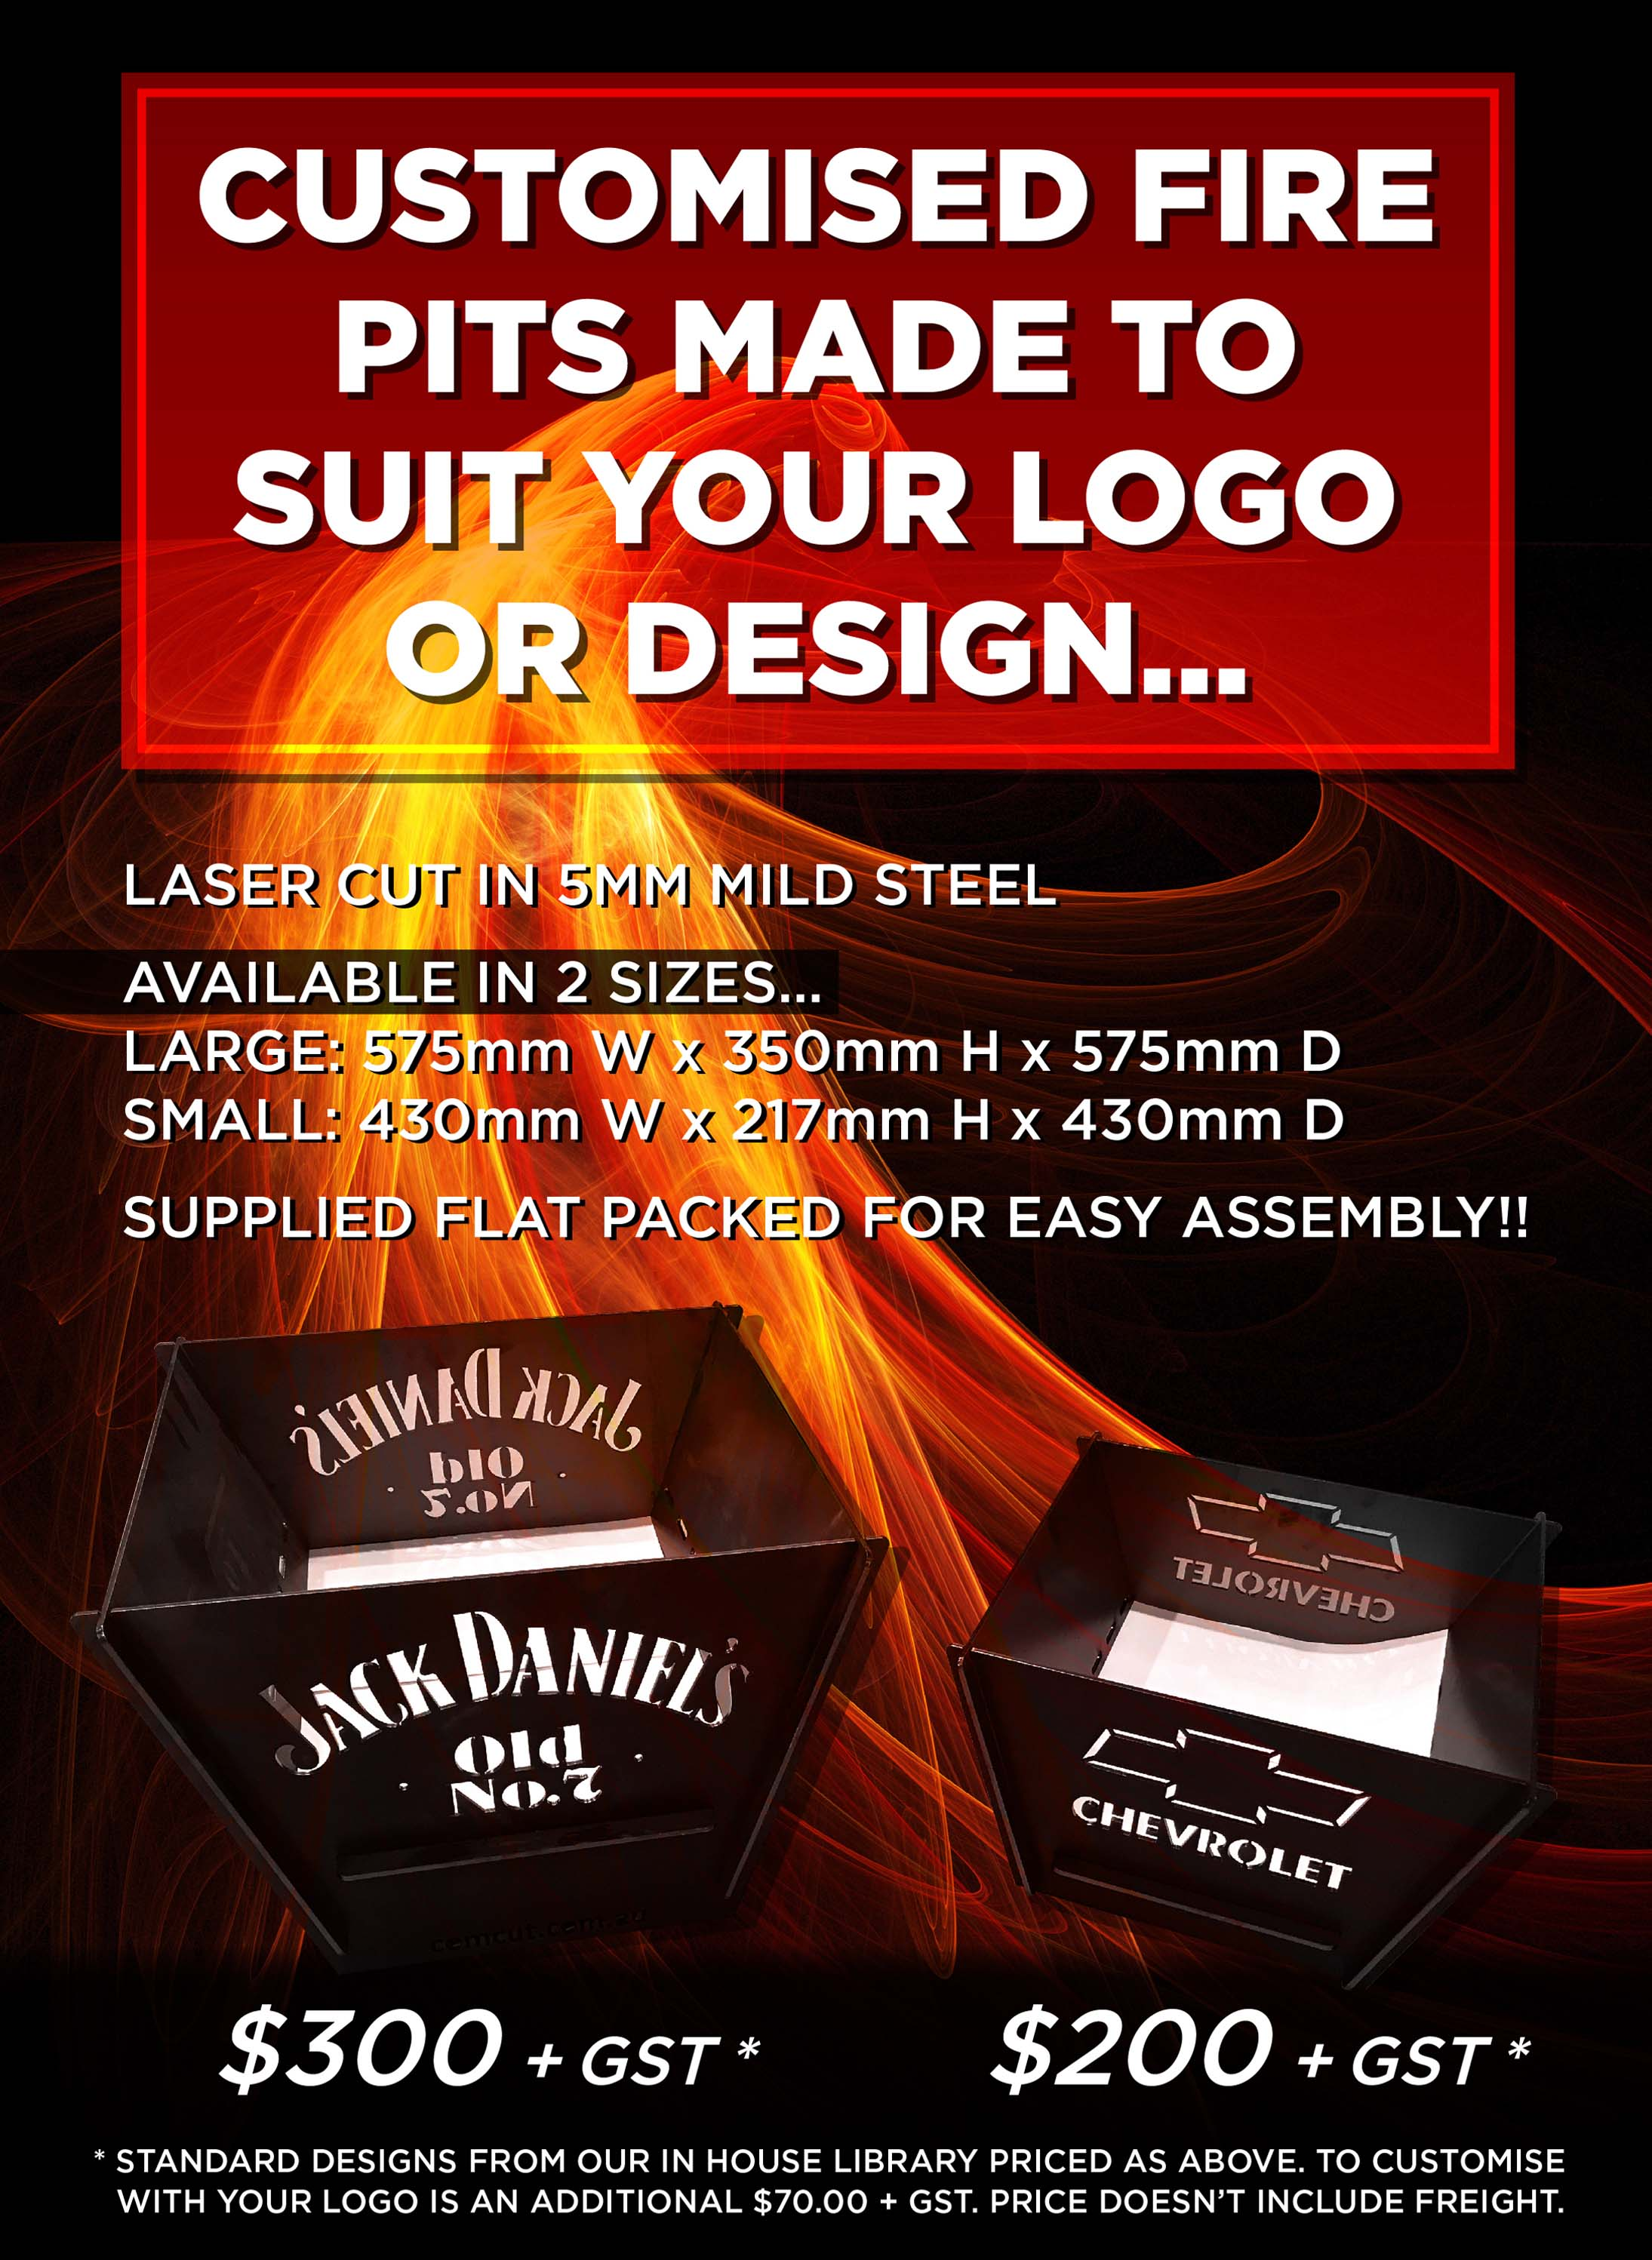 Customised Fire Pits with your logo